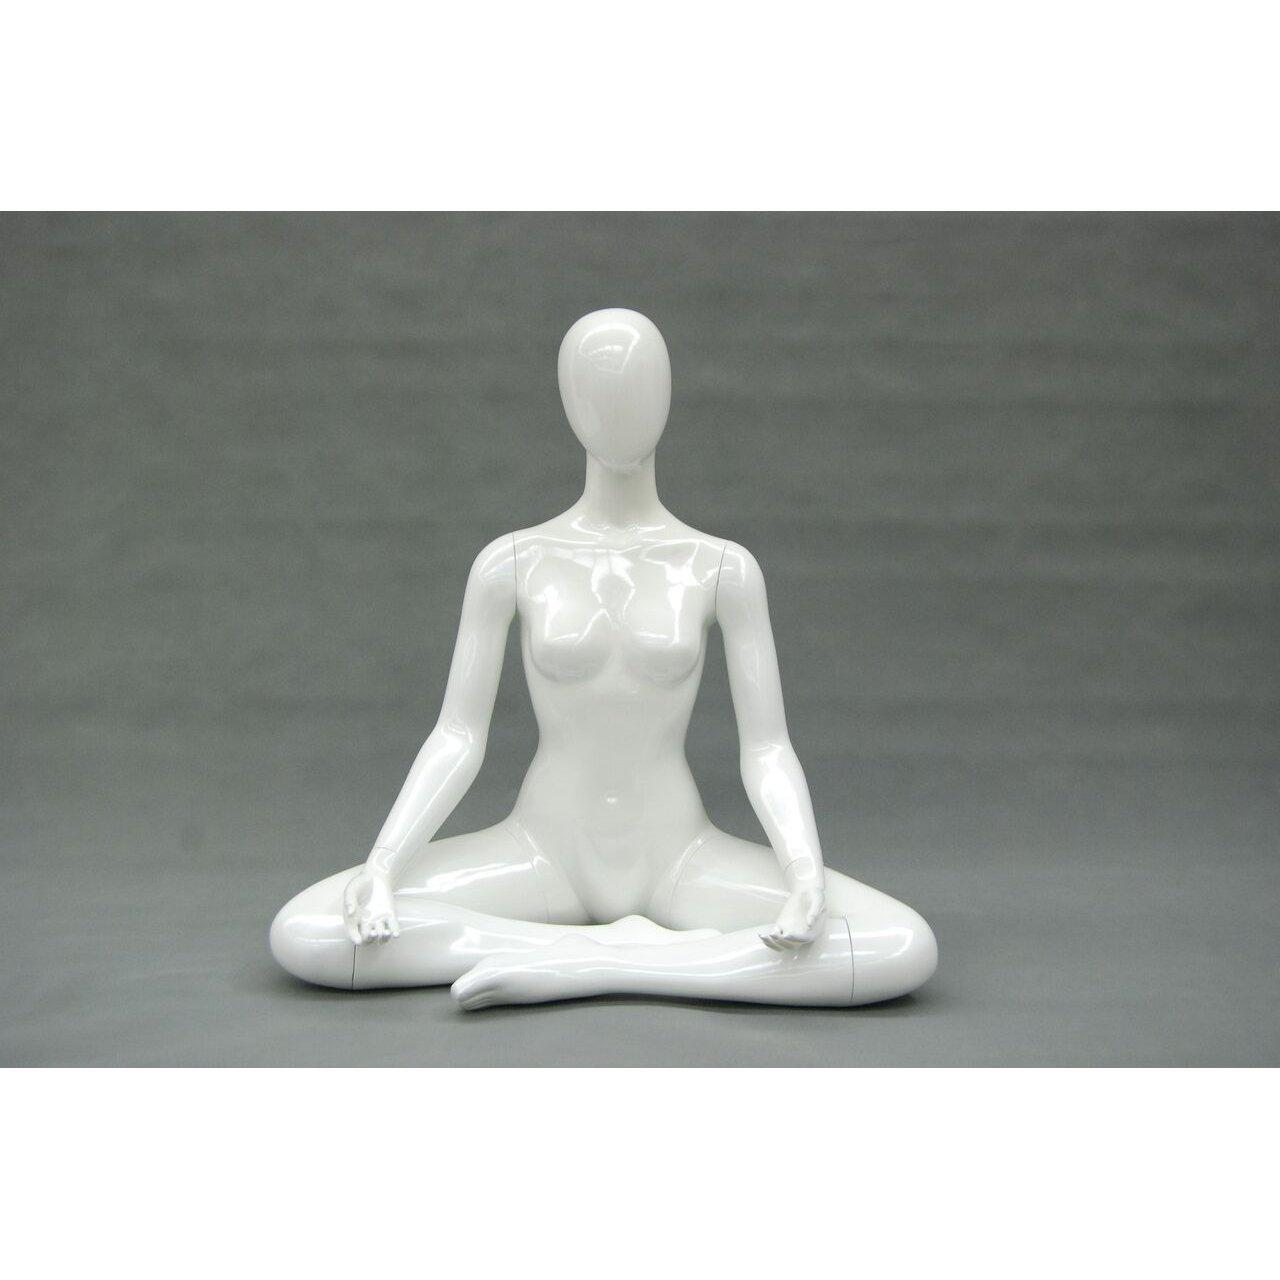 Mannequin Mall Yoga Mannequin MM-YOGA01 For Fashion Stores and Retail Shops